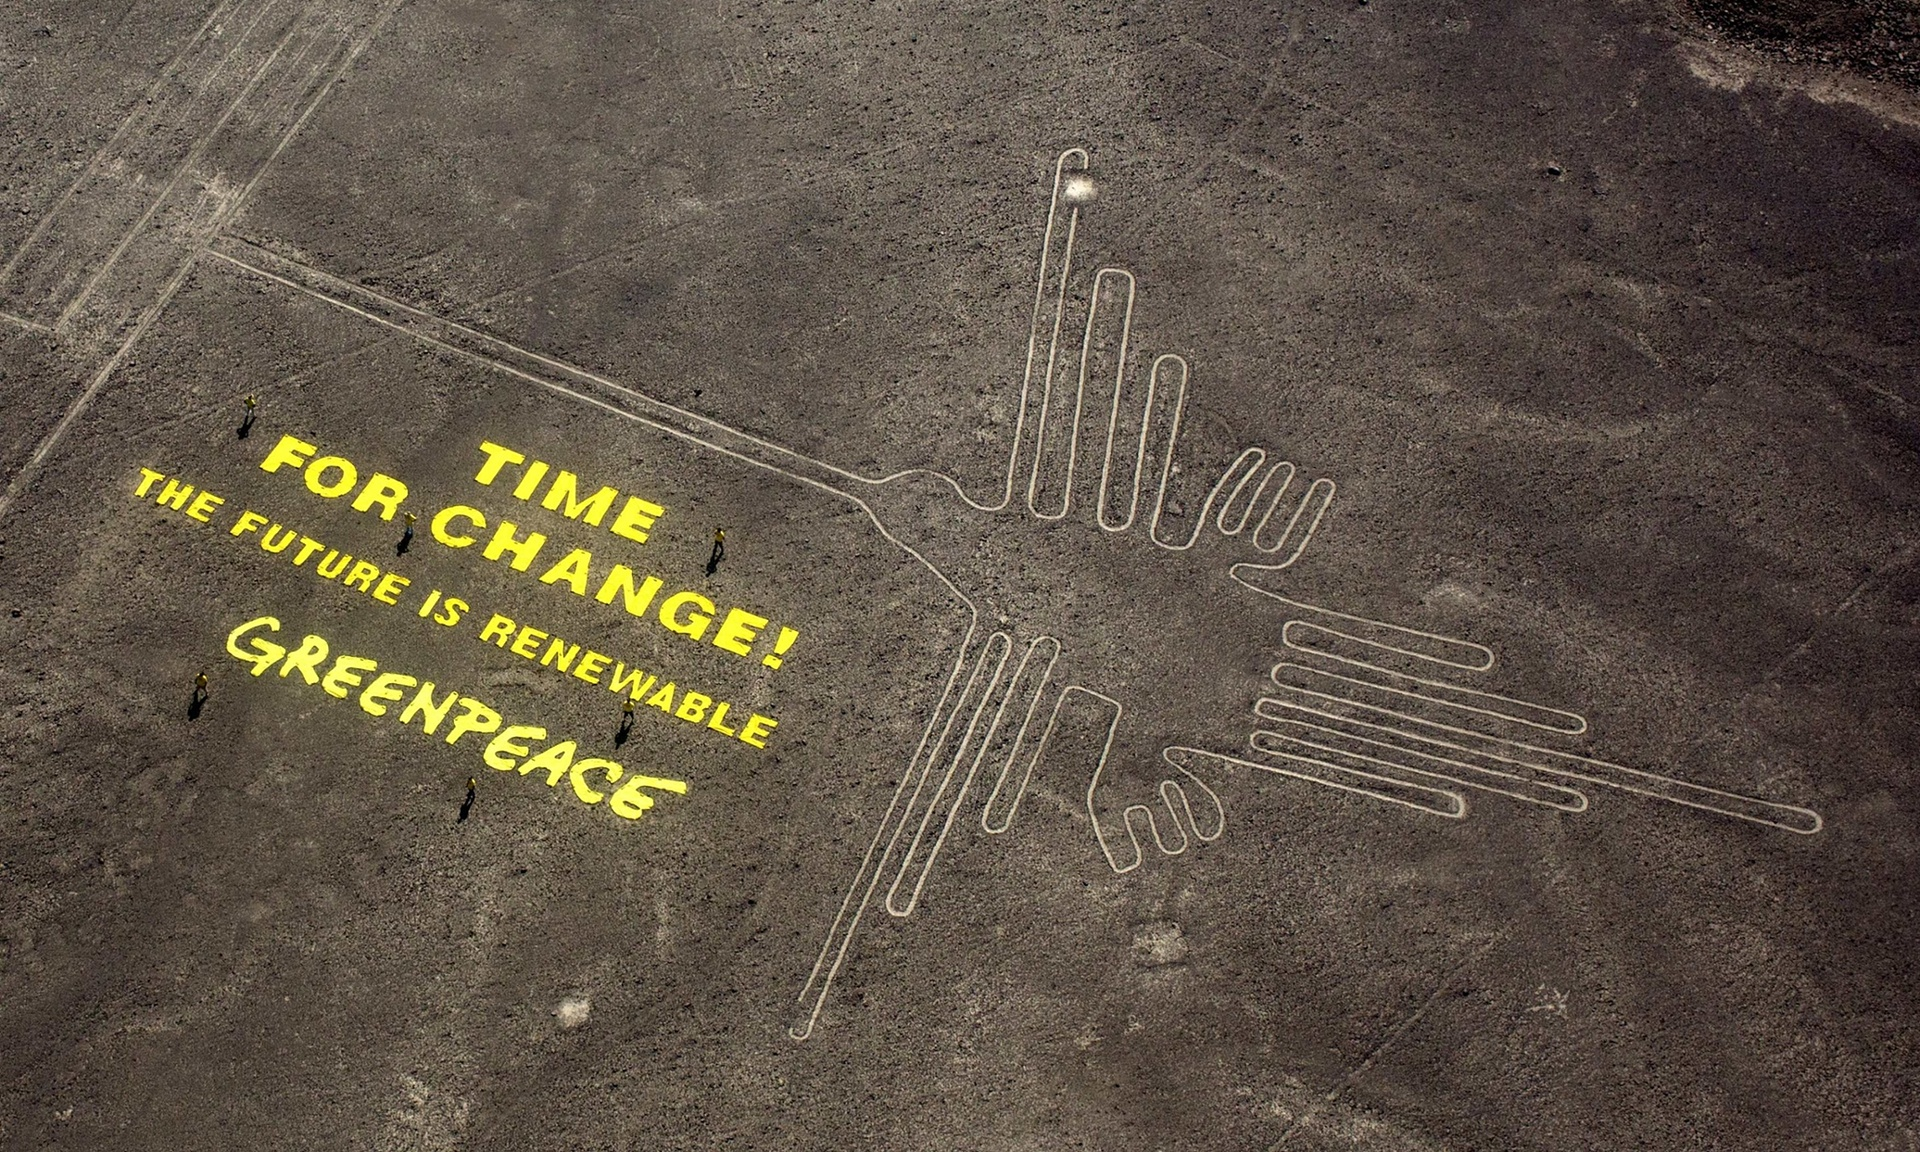 Yes they actually wrote on the ground, this is not photoshop magic,photograph Rodrigo Abd/AP